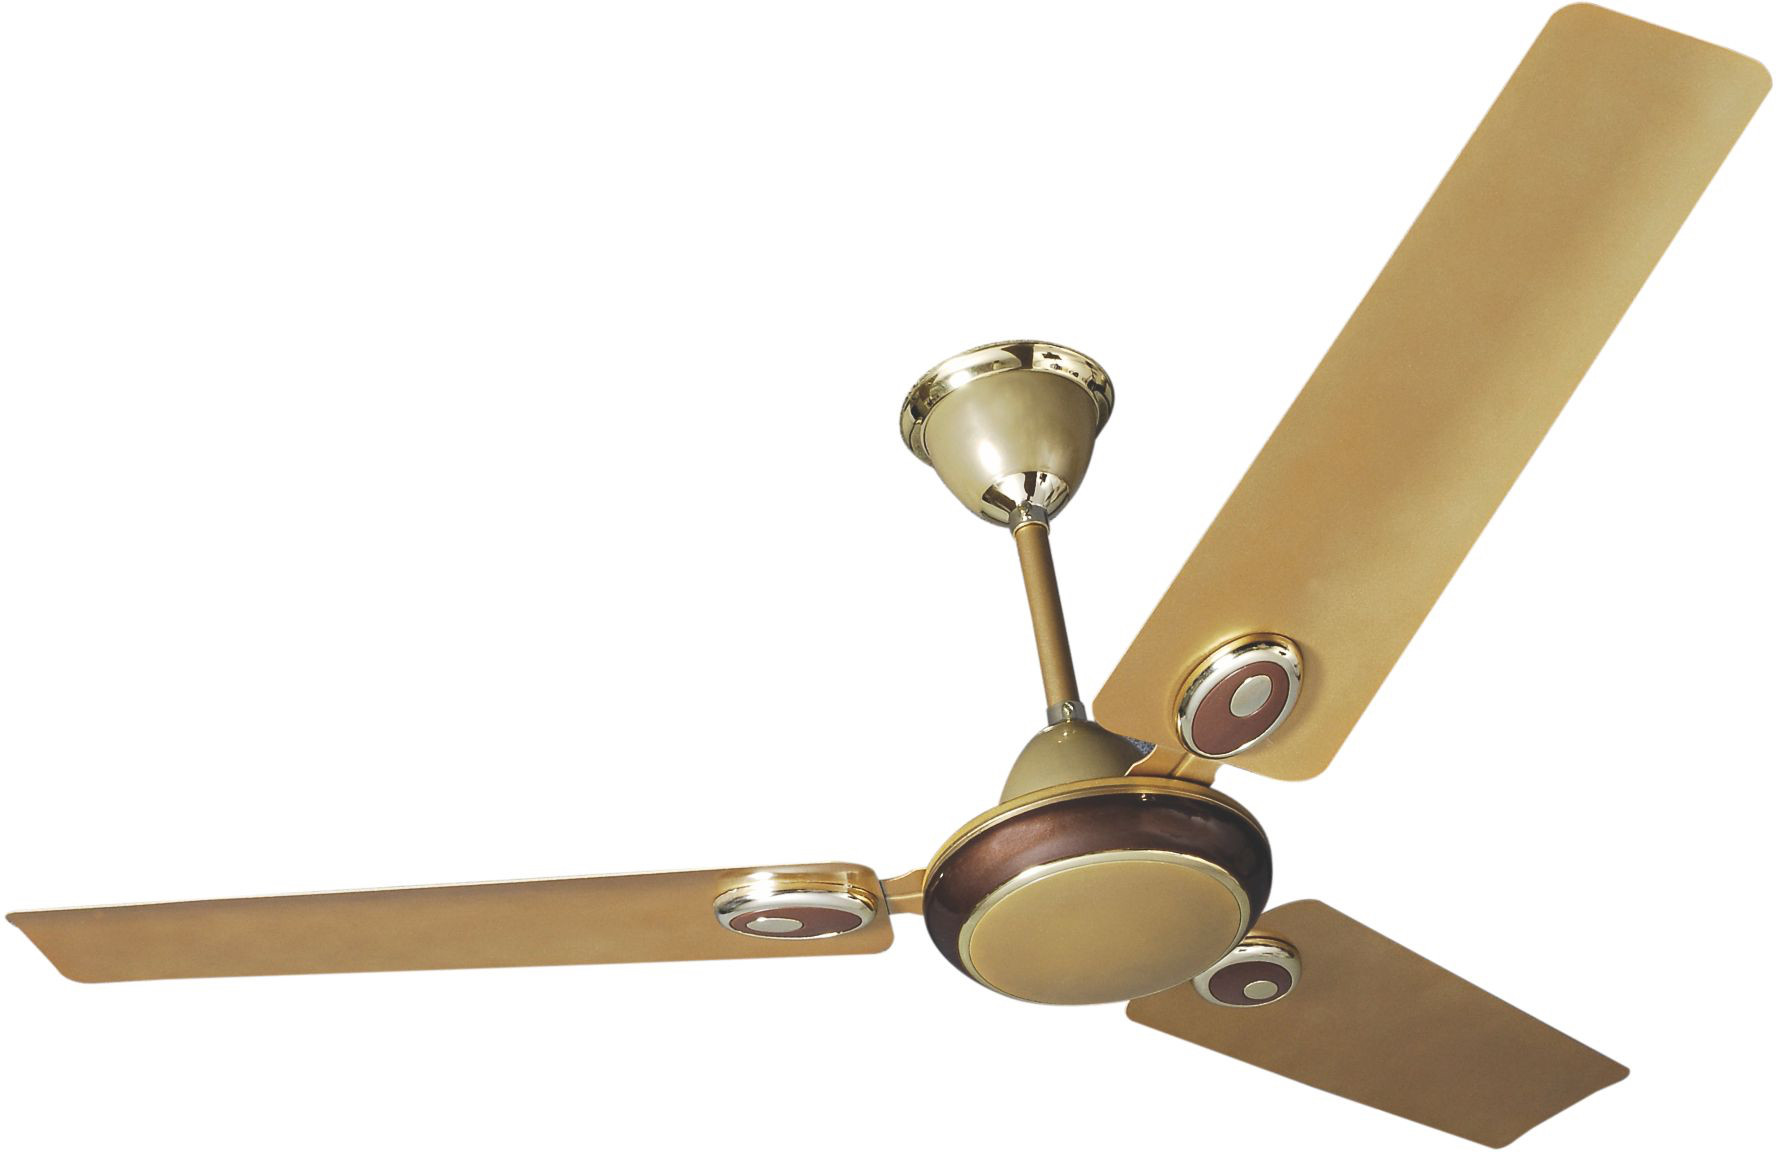 Omega 48 solitaire 1220 mm golden brown 3 blade ceiling fangold omega 48 solitaire 1220 mm golden brown 3 blade ceiling fangold aloadofball Gallery